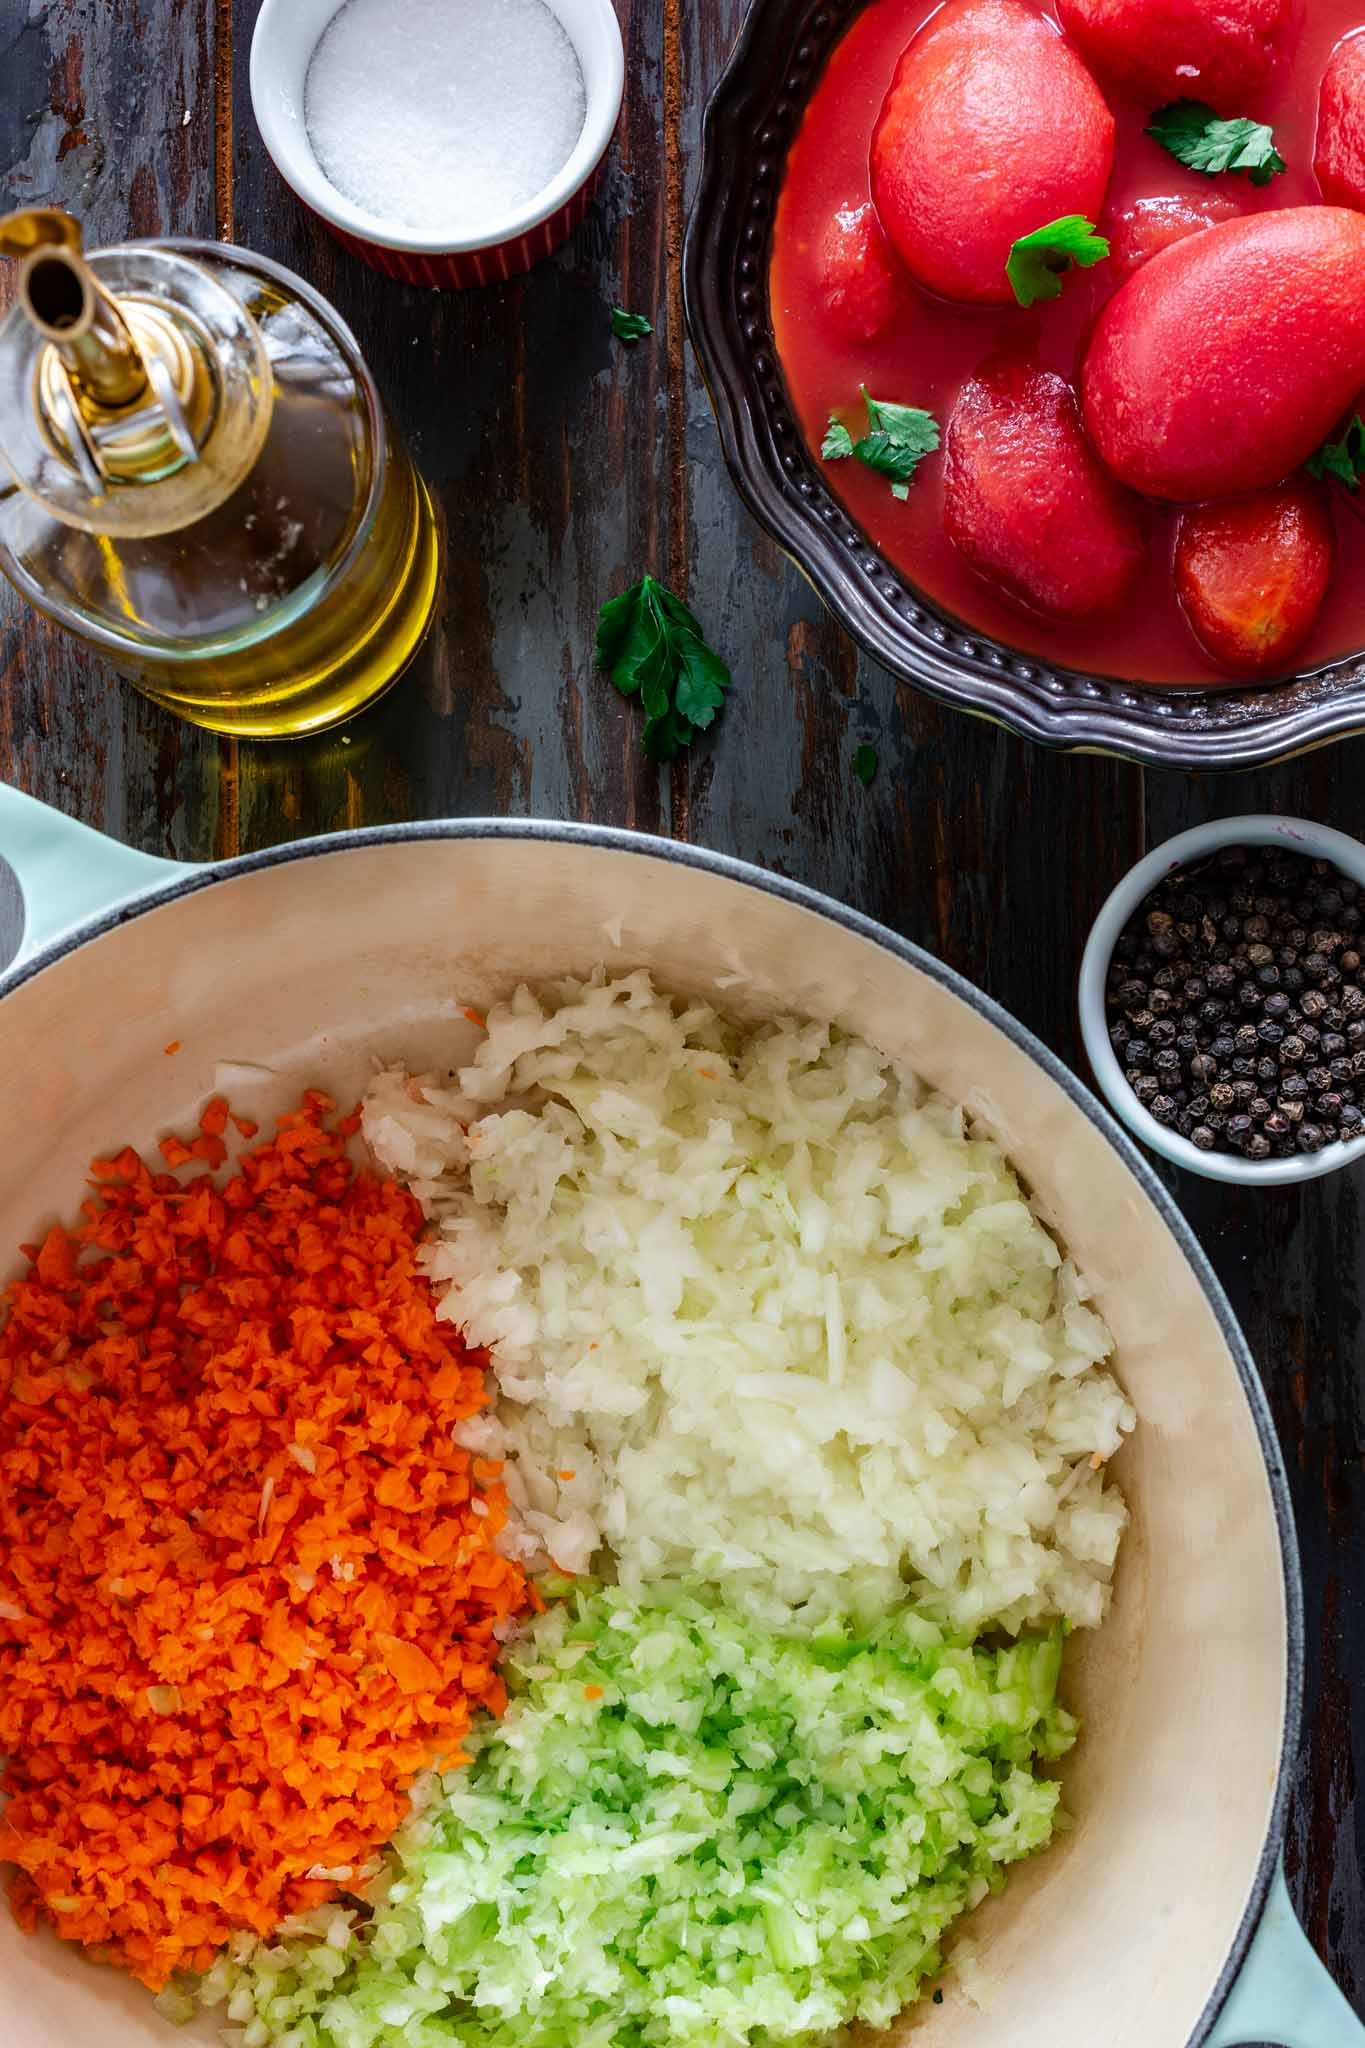 Ingredients for Italian Soffritto - carrots, onions and celery